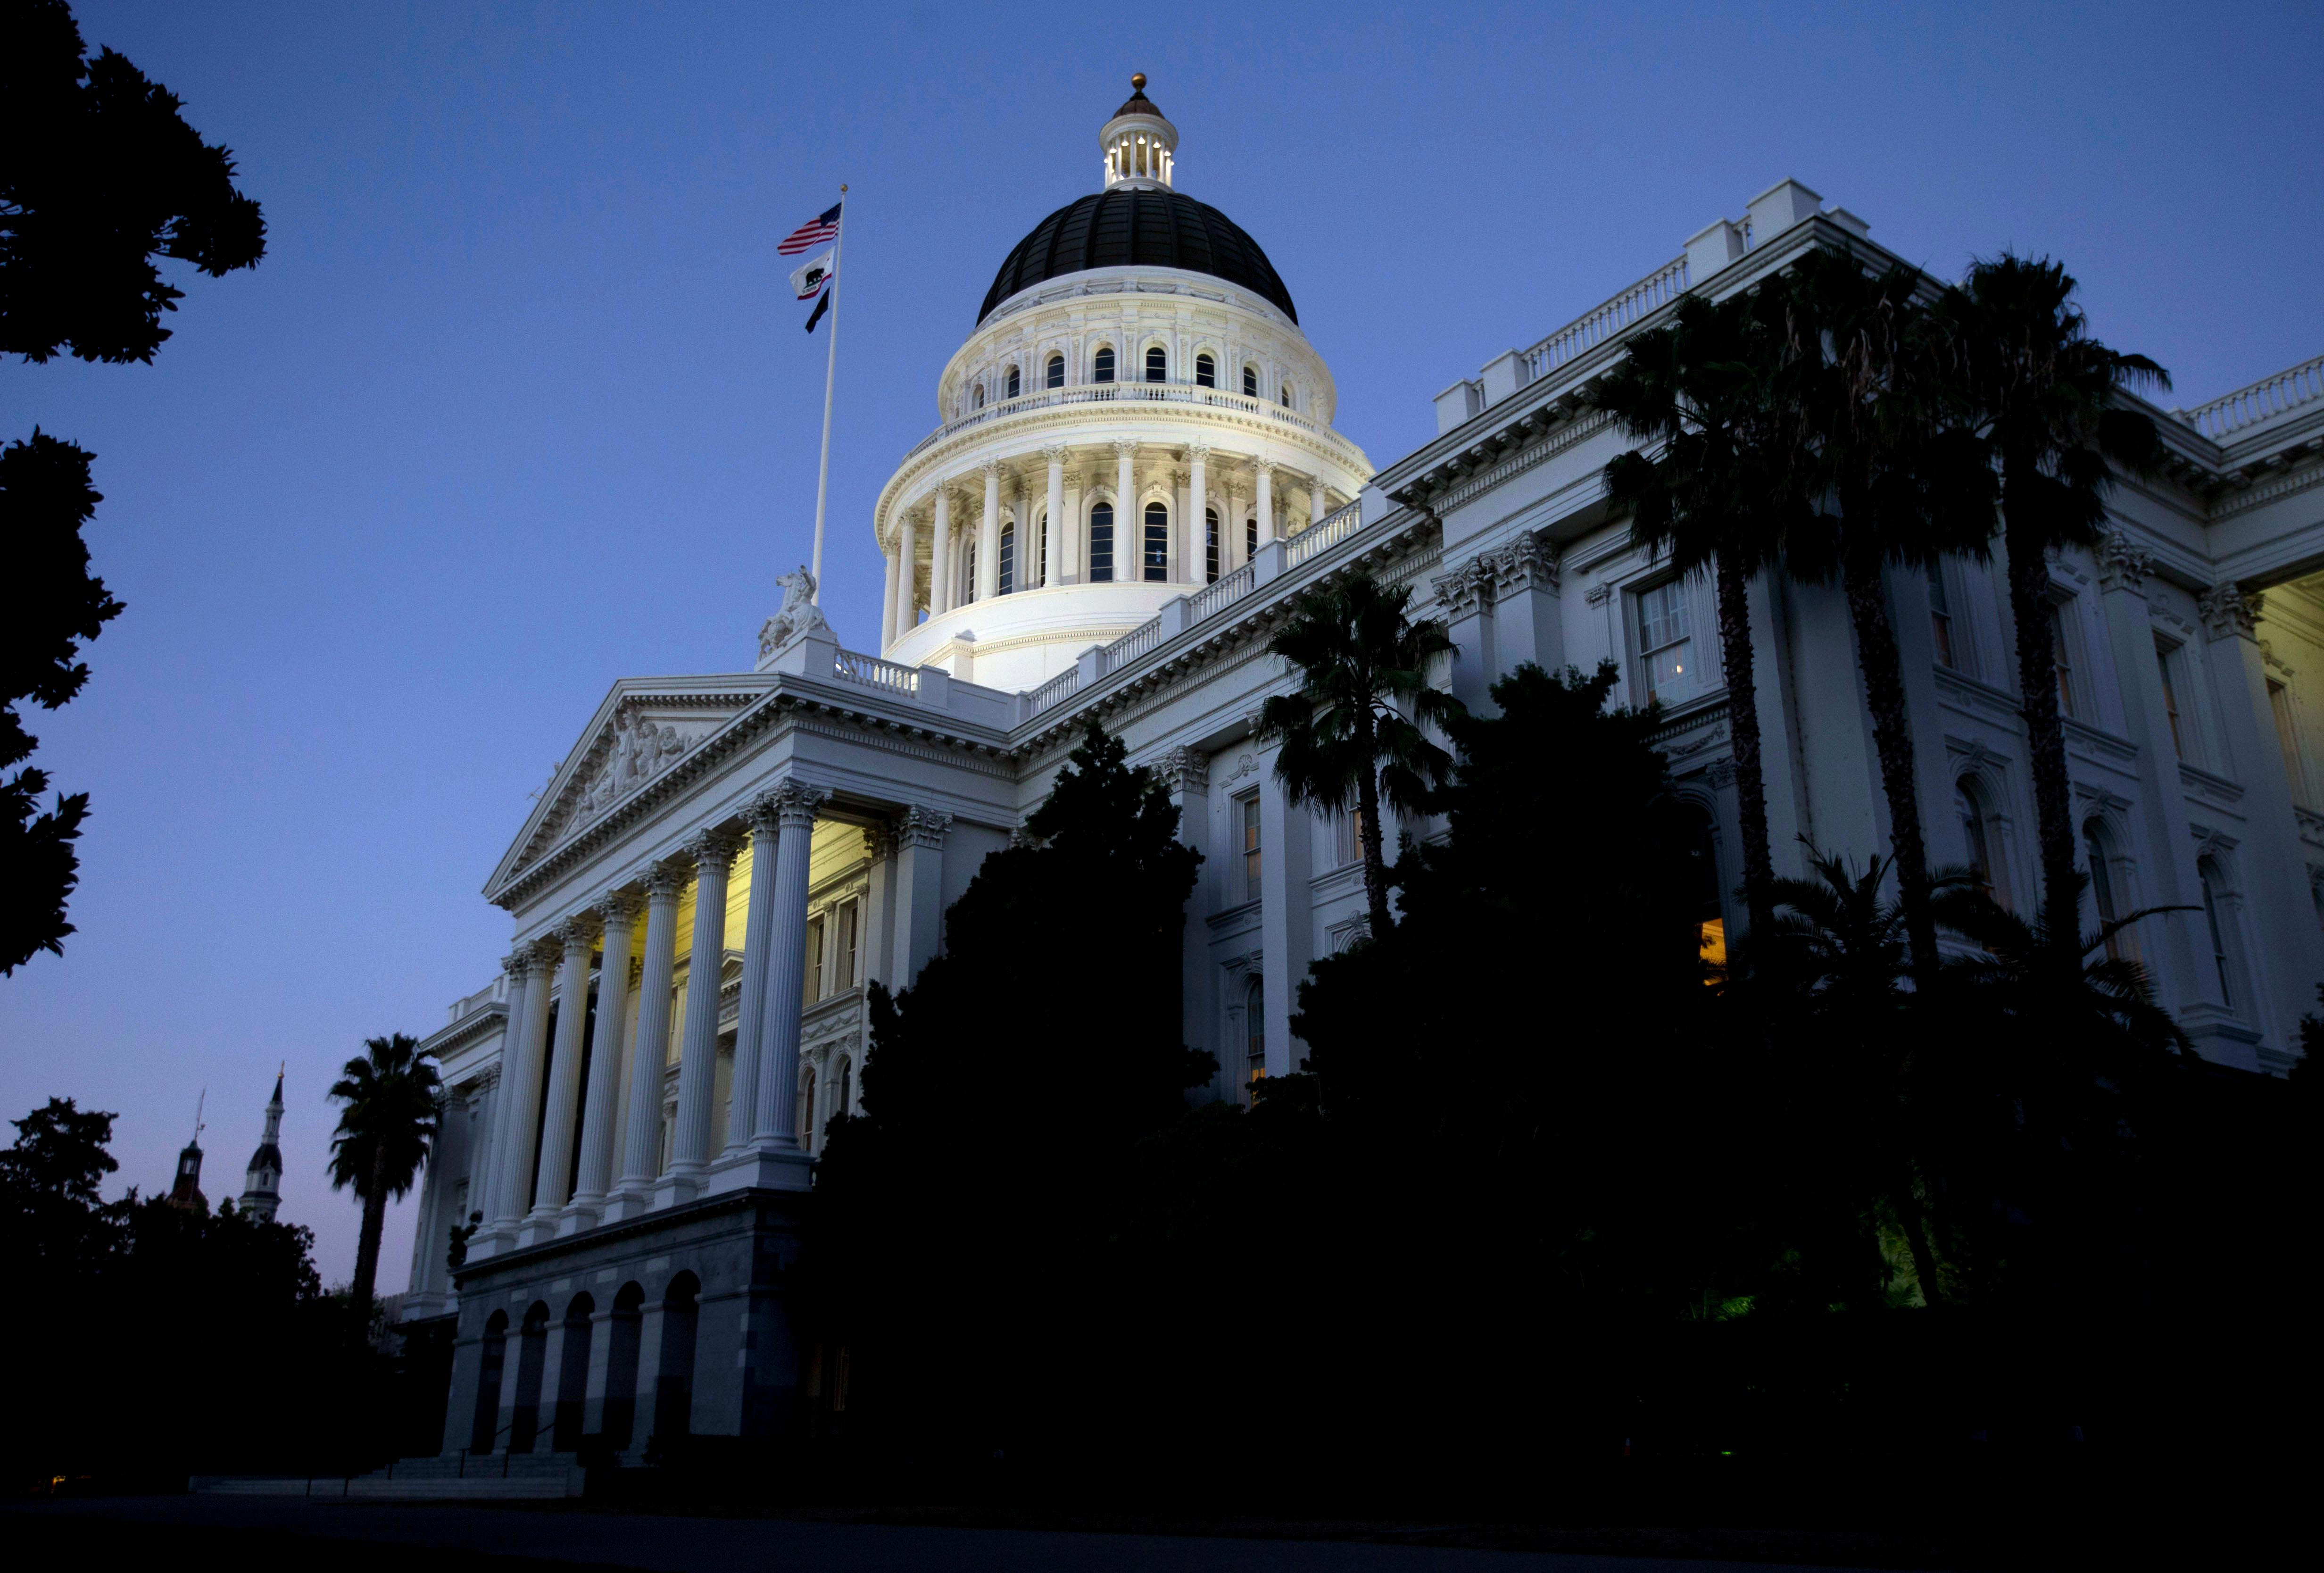 FILE -- In this Aug. 31, 2016 file photo the dome of the state Capitol glows in the early evening in Sacramento, Calif.  California lawmakers return Monday, Aug. 21 , from a monthlong break with a busy agenda that includes tackling the state's housing crisis and deciding whether to make California a statewide sanctuary for people living illegally in the U.S.(AP Photo/Rich Pedroncelli, file)